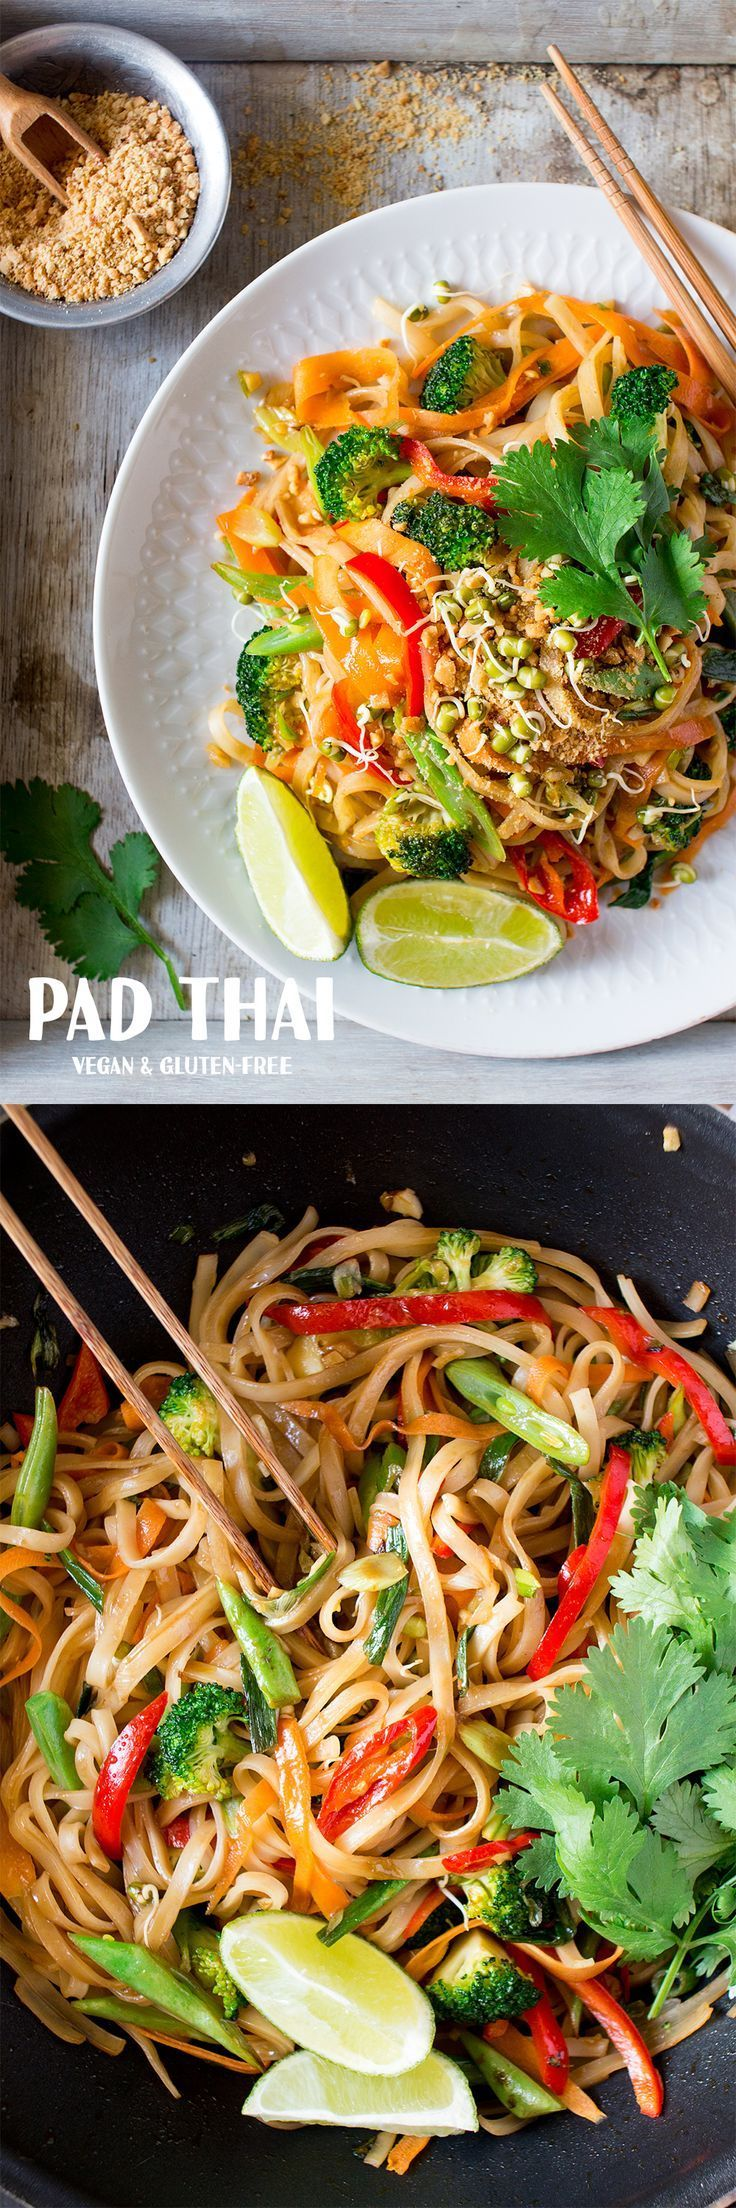 pad thai This vegan and glutenfree padthai makes an easy, quick and satisfying lunch or dinner.This vegan and glutenfree padthai makes an easy, quick and satisfying lunch or dinner.